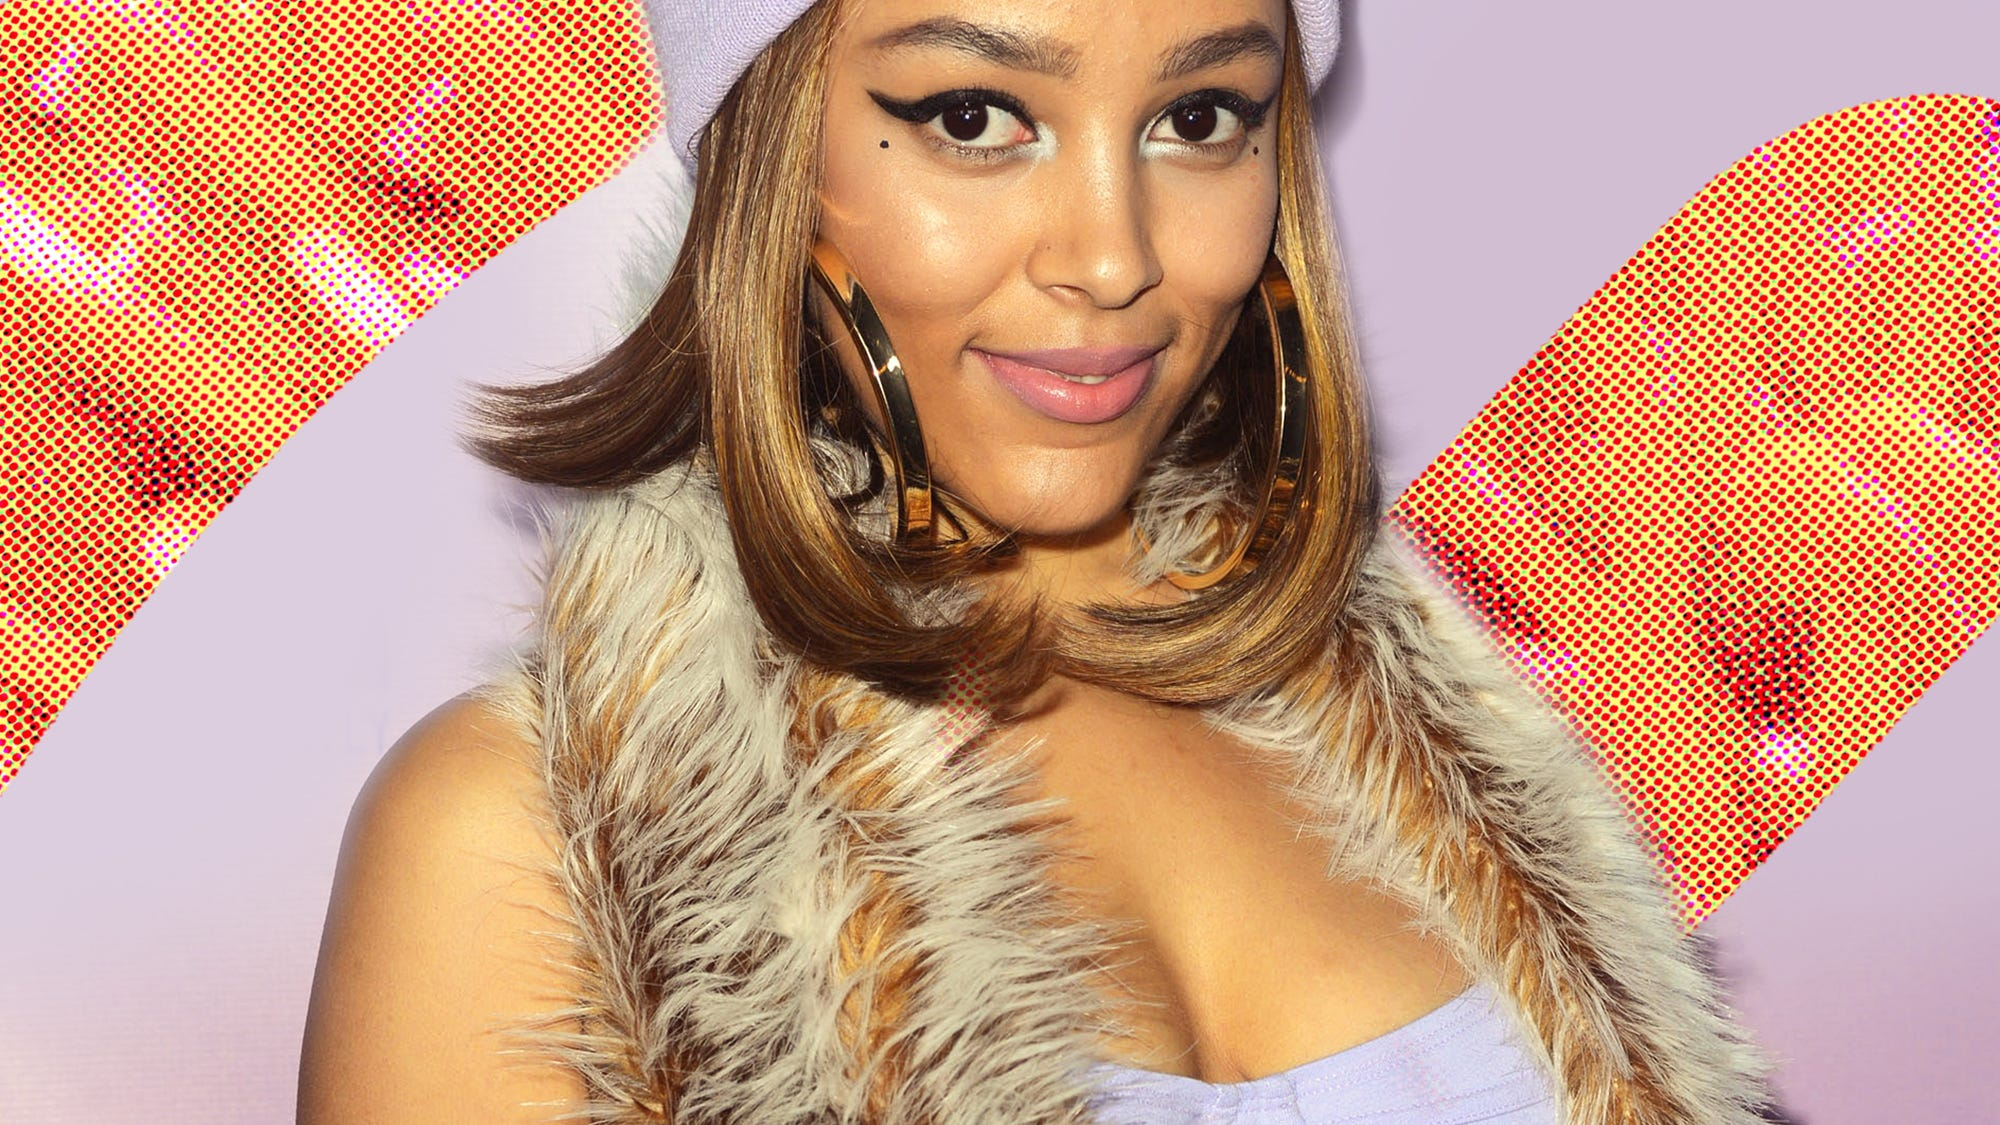 Let's Talk About Doja Cat & The